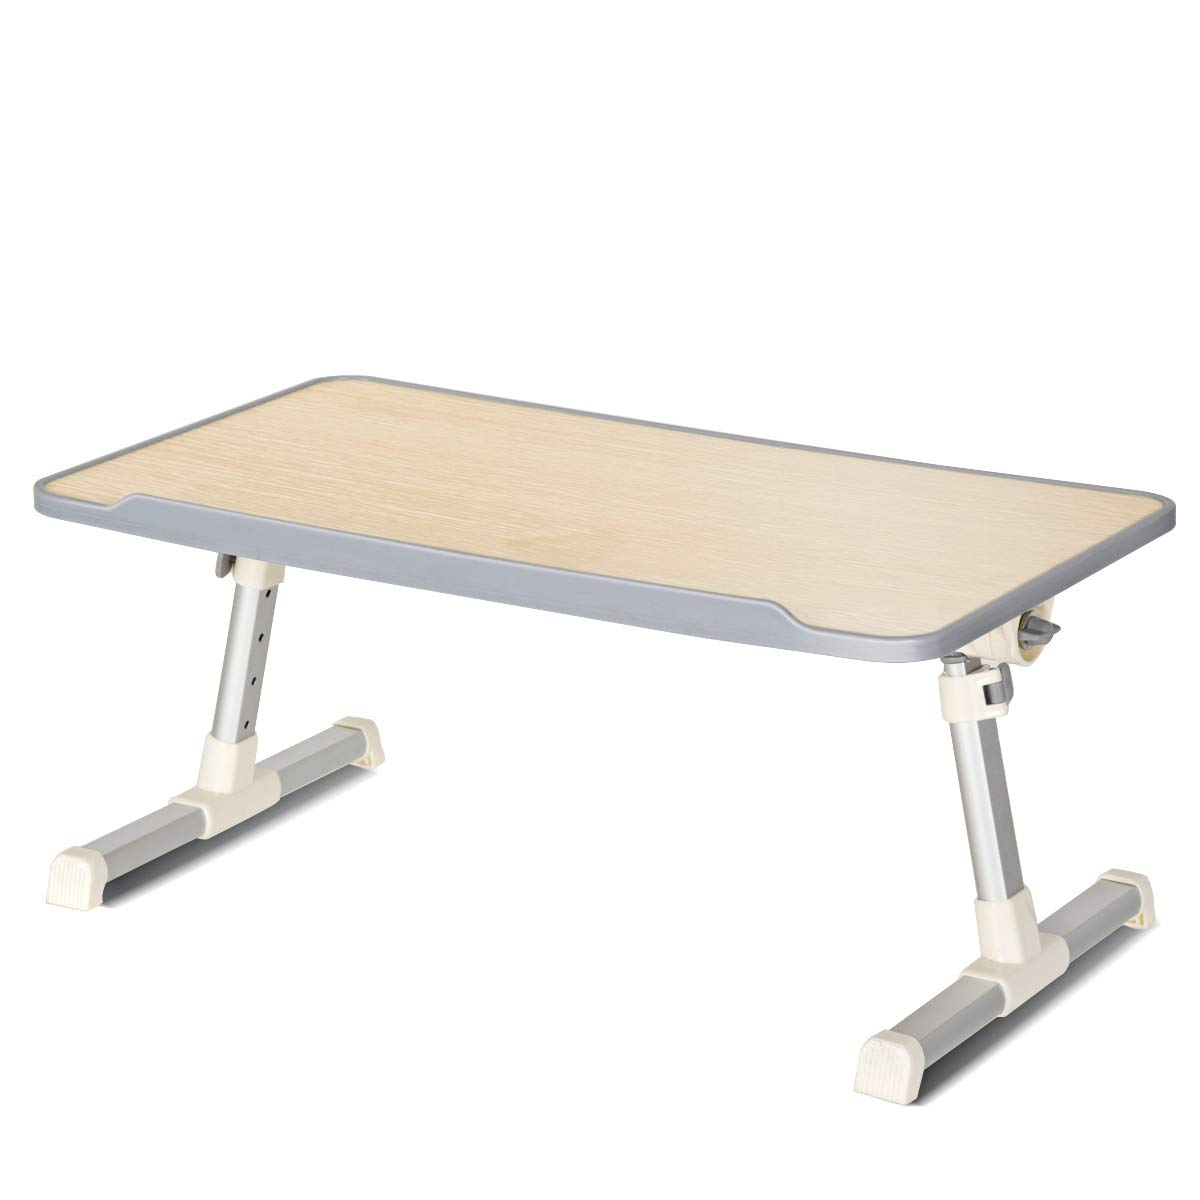 Tangkula Bed Table Adjustable Laptop Table, Portable Standing Bed Desk with Foldable Legs, Notebook Stand Reading Holder for Couch & Floor Sofa Breakfast Tray, Computer Riser, Outdoor Camping Table